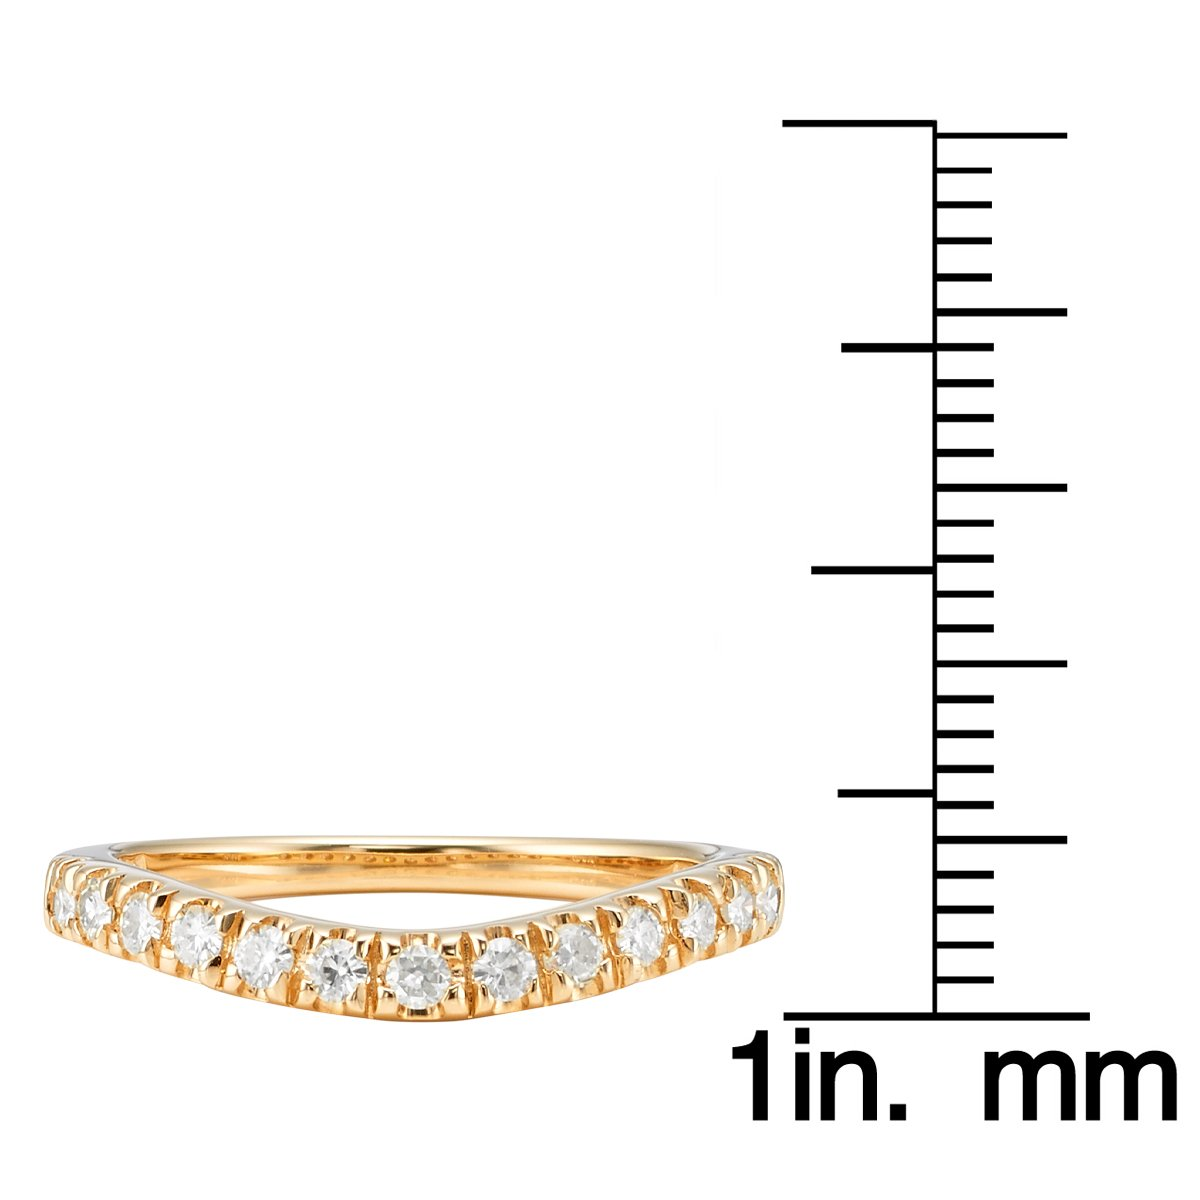 Forever Classic Yellow Gold 1.8mm Moissanite Wedding Band - size 6, 0.33cttw DEW By Charles & Colvard by Charles & Colvard (Image #5)